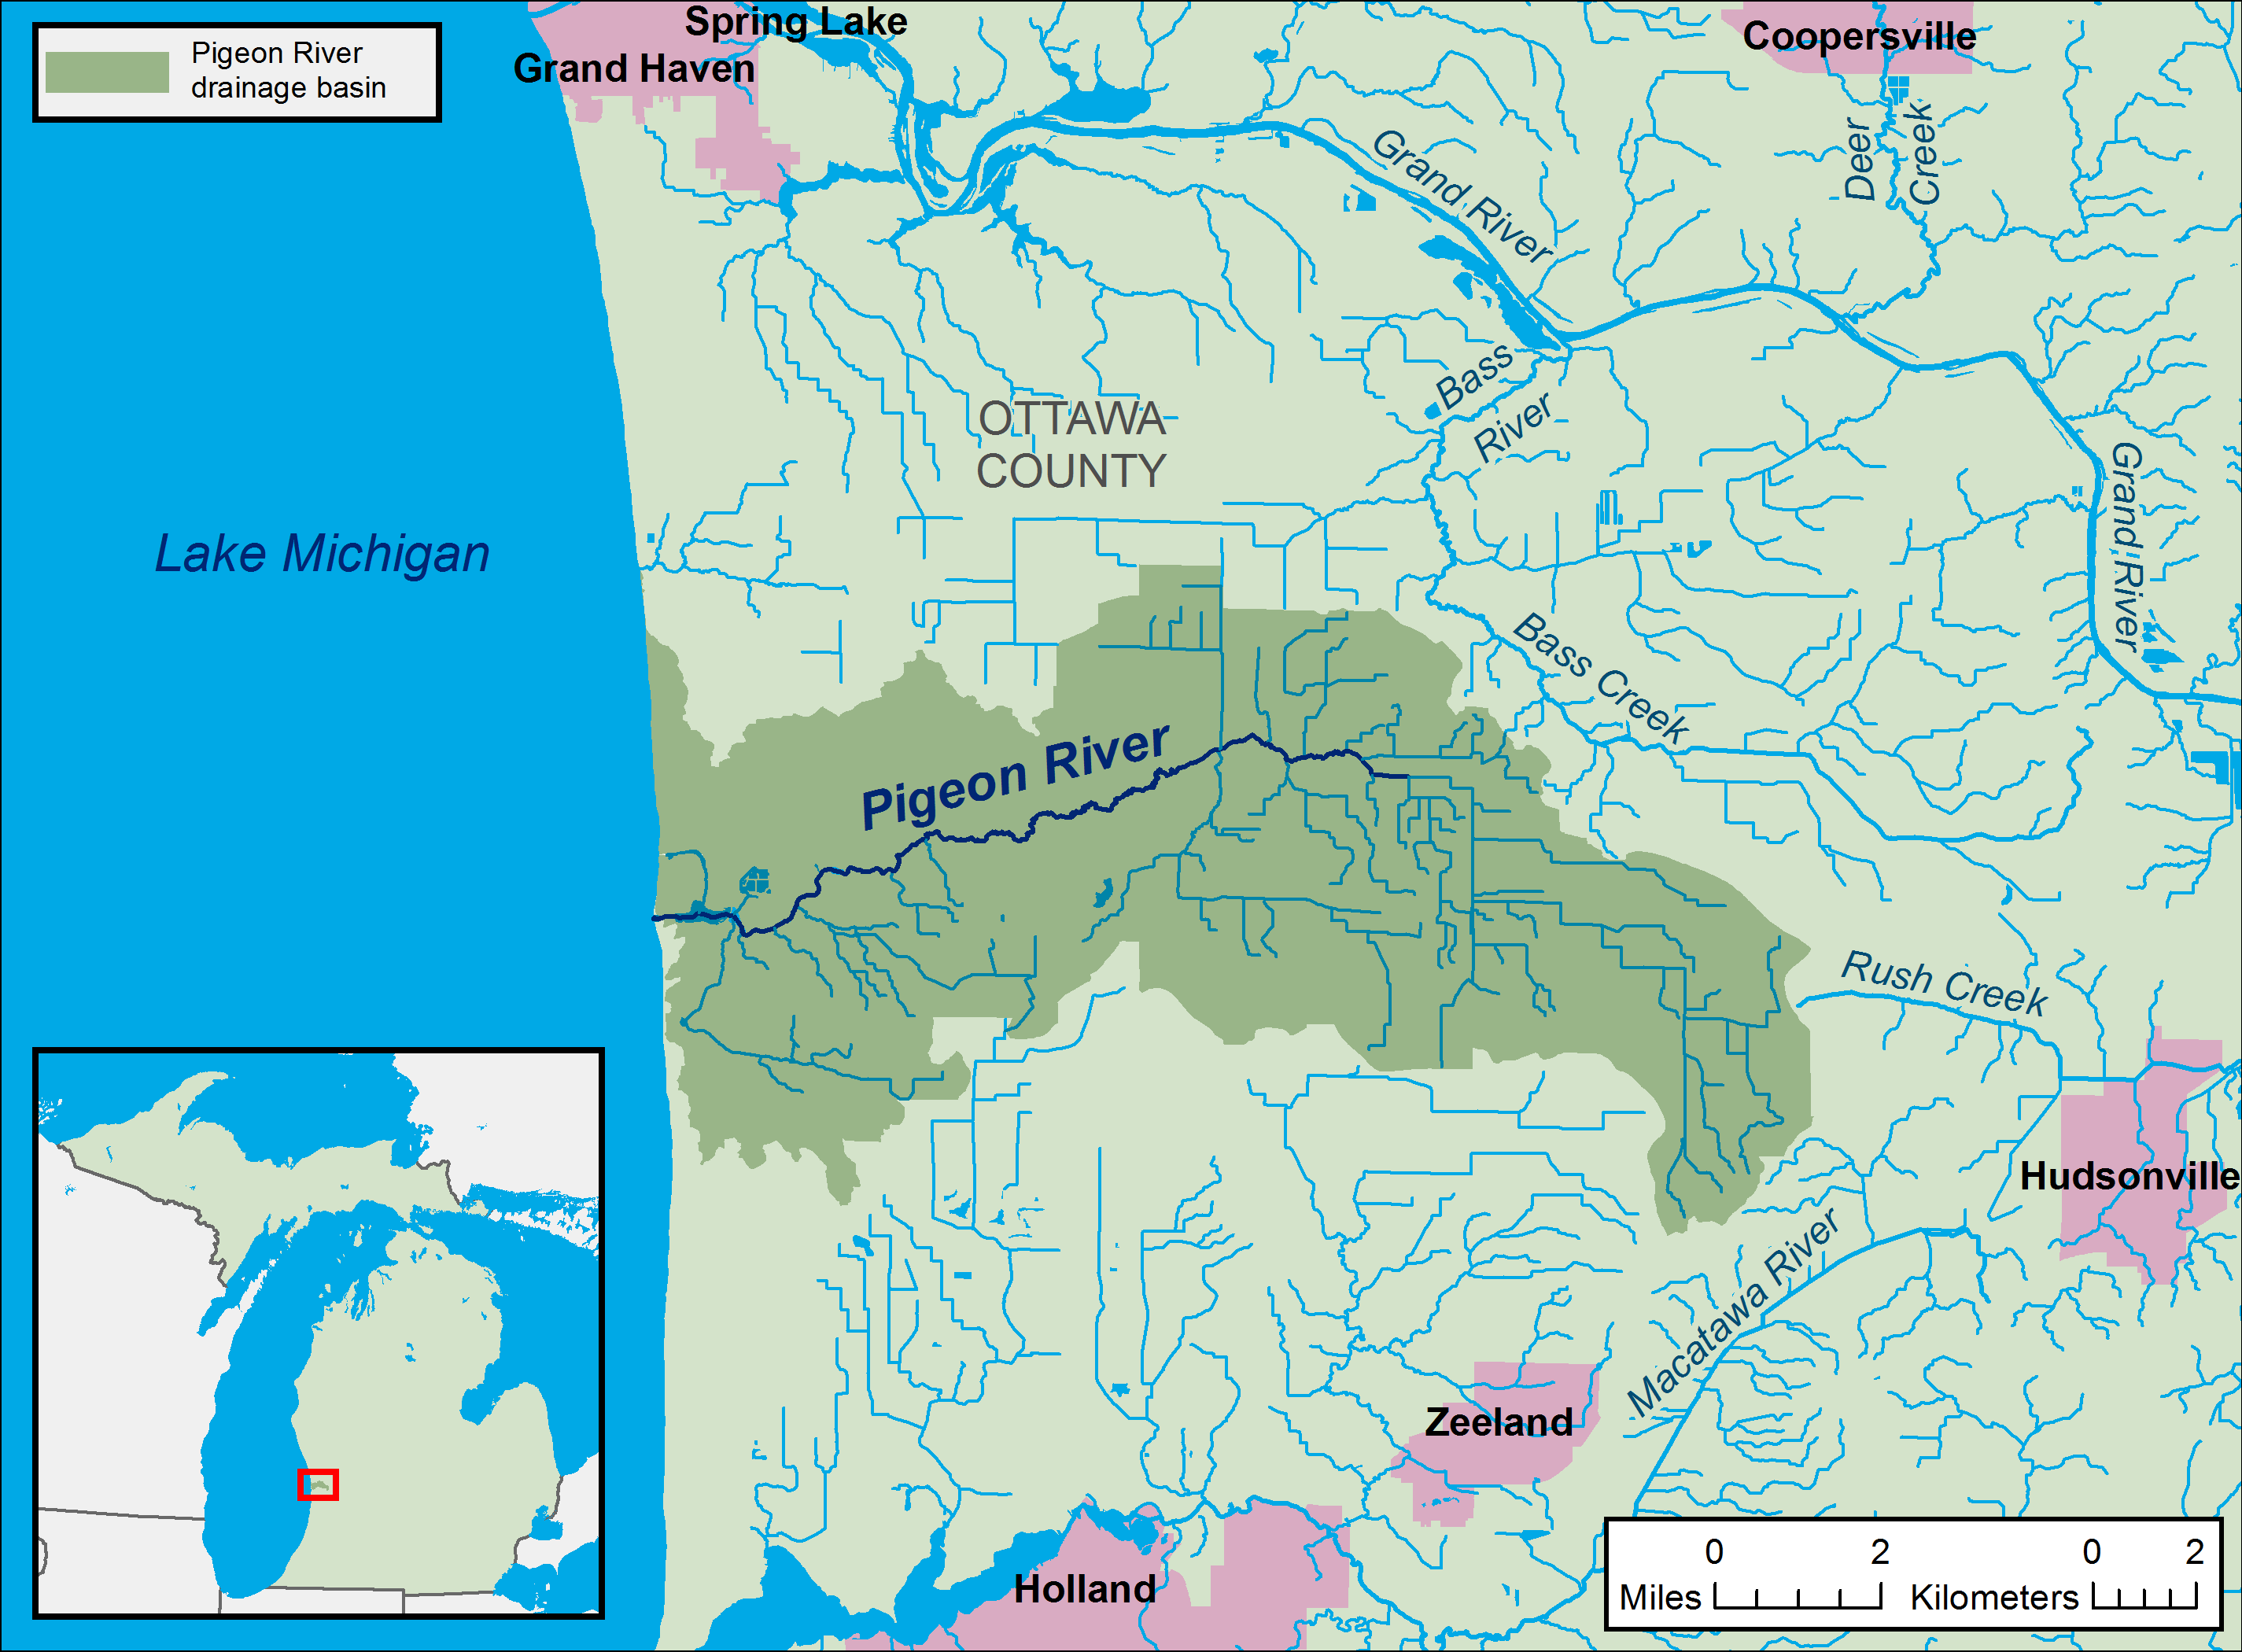 File:Pigeon River Ottawa County Michigan map.png   Wikipedia